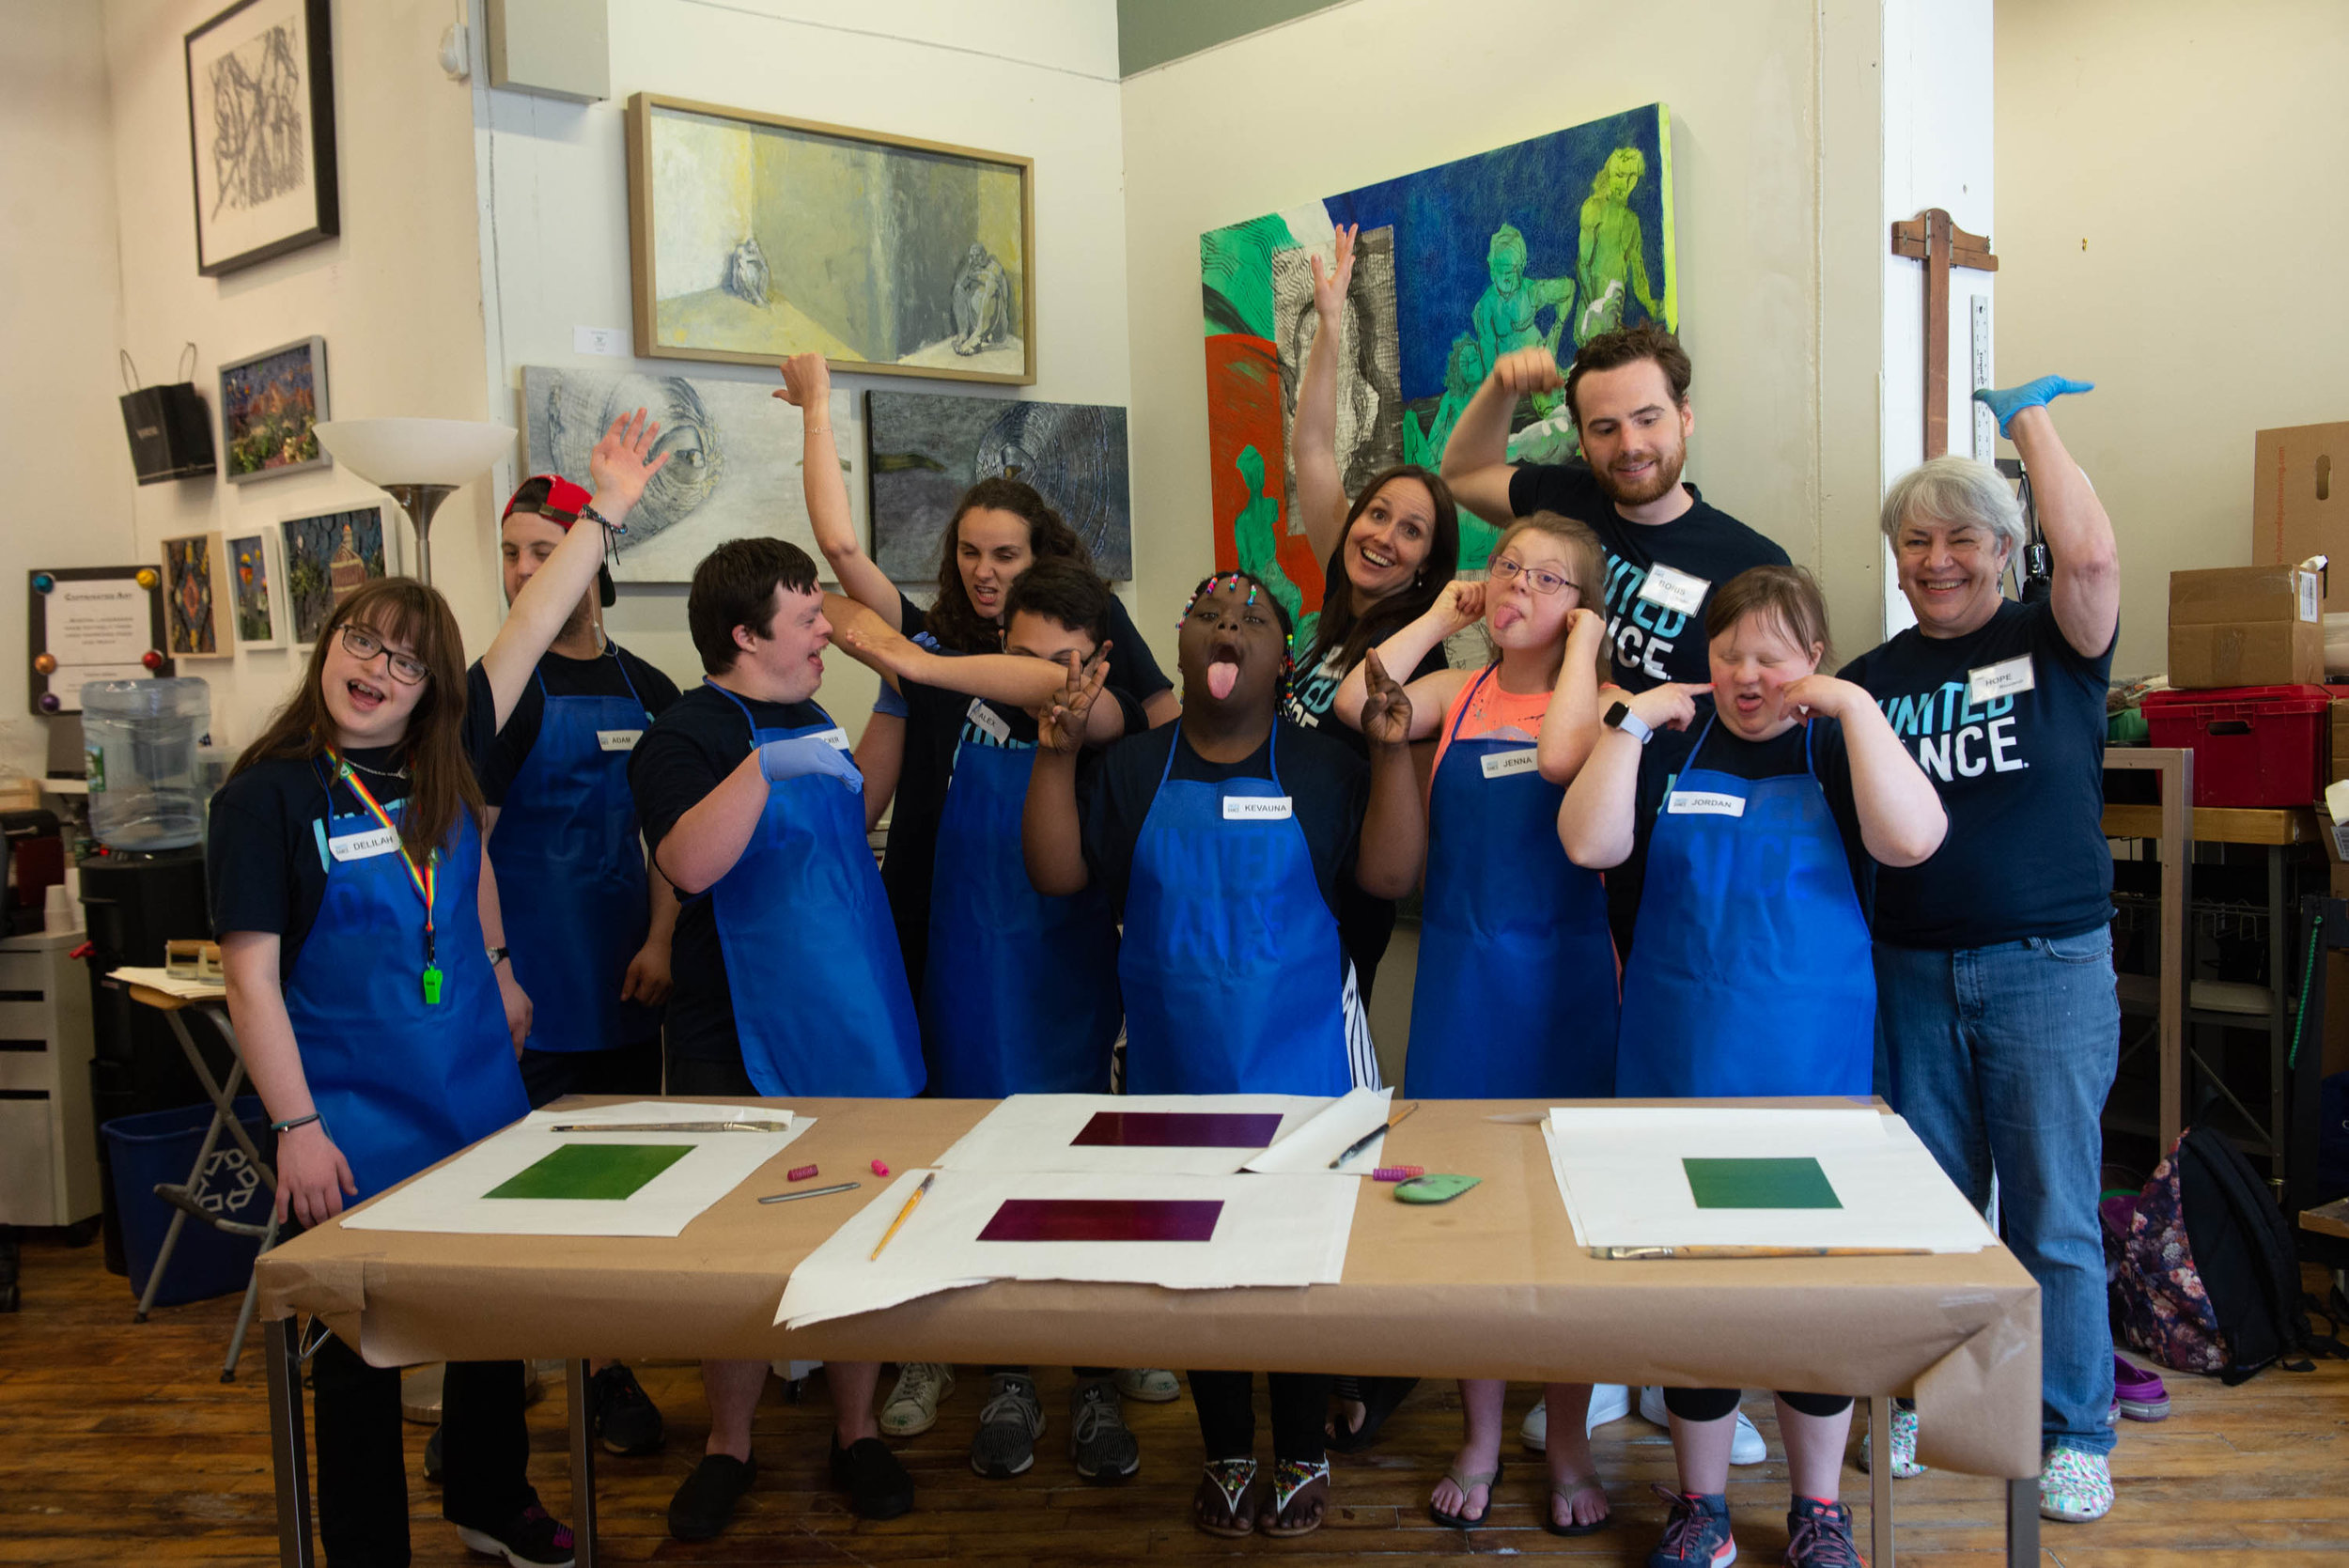 United Dance Art Course tailor made for youth and young adults with Down syndrome!